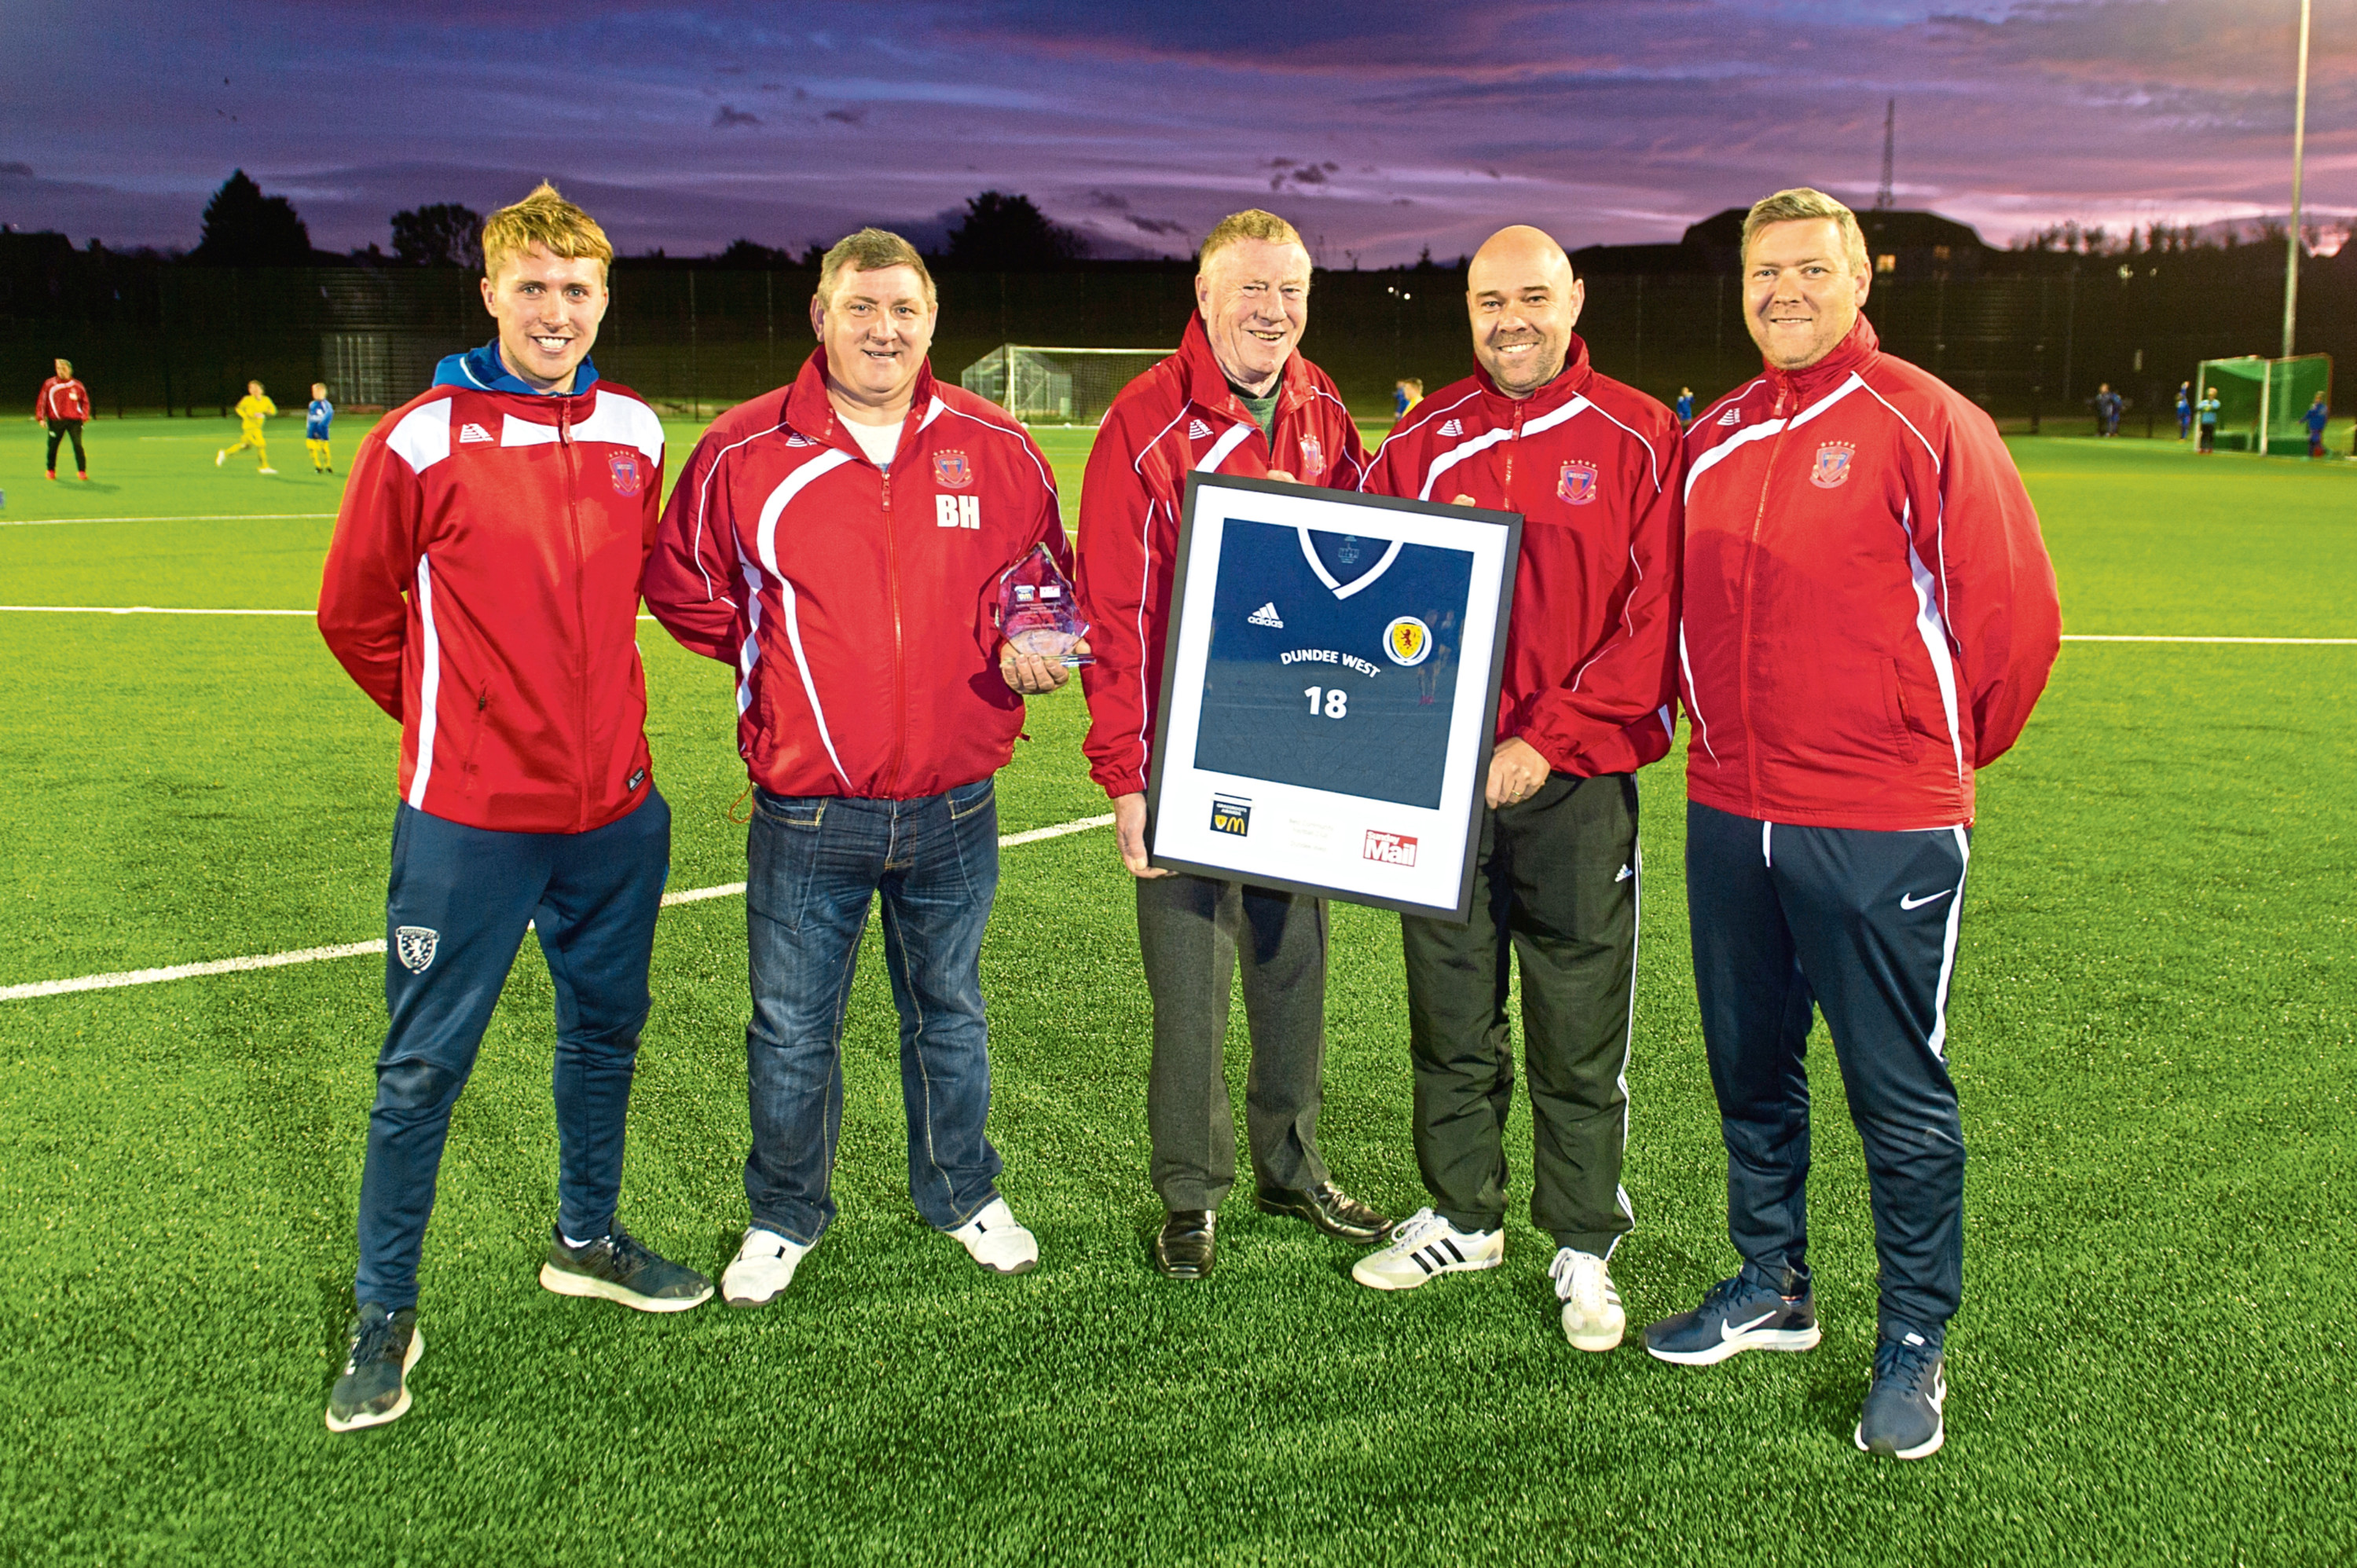 Dundee West Football Club's Tam McCabe (club development officer), Norman Low (vice-president), Jim Hunter (president), Paul Gibson (secretary) and Ross Laing (assistant secretary) with their accolades